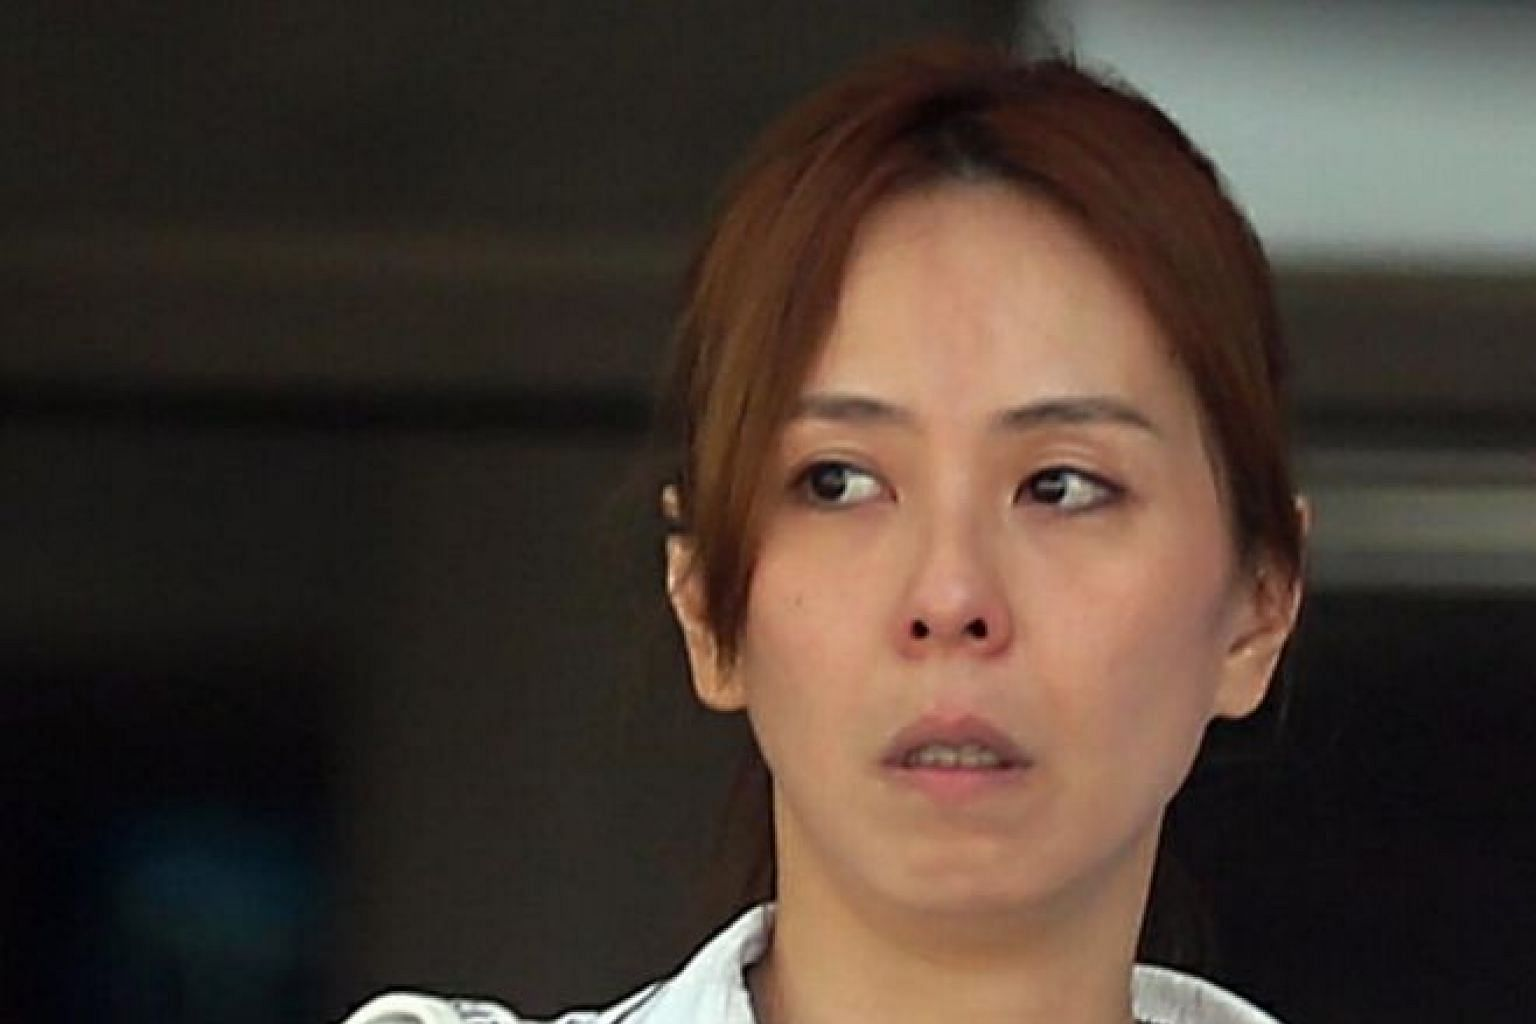 Lau Pin Lin pleaded guilty to cheating, falsification of accounts and two offences under the Computer Misuse and Cybersecurity Act.